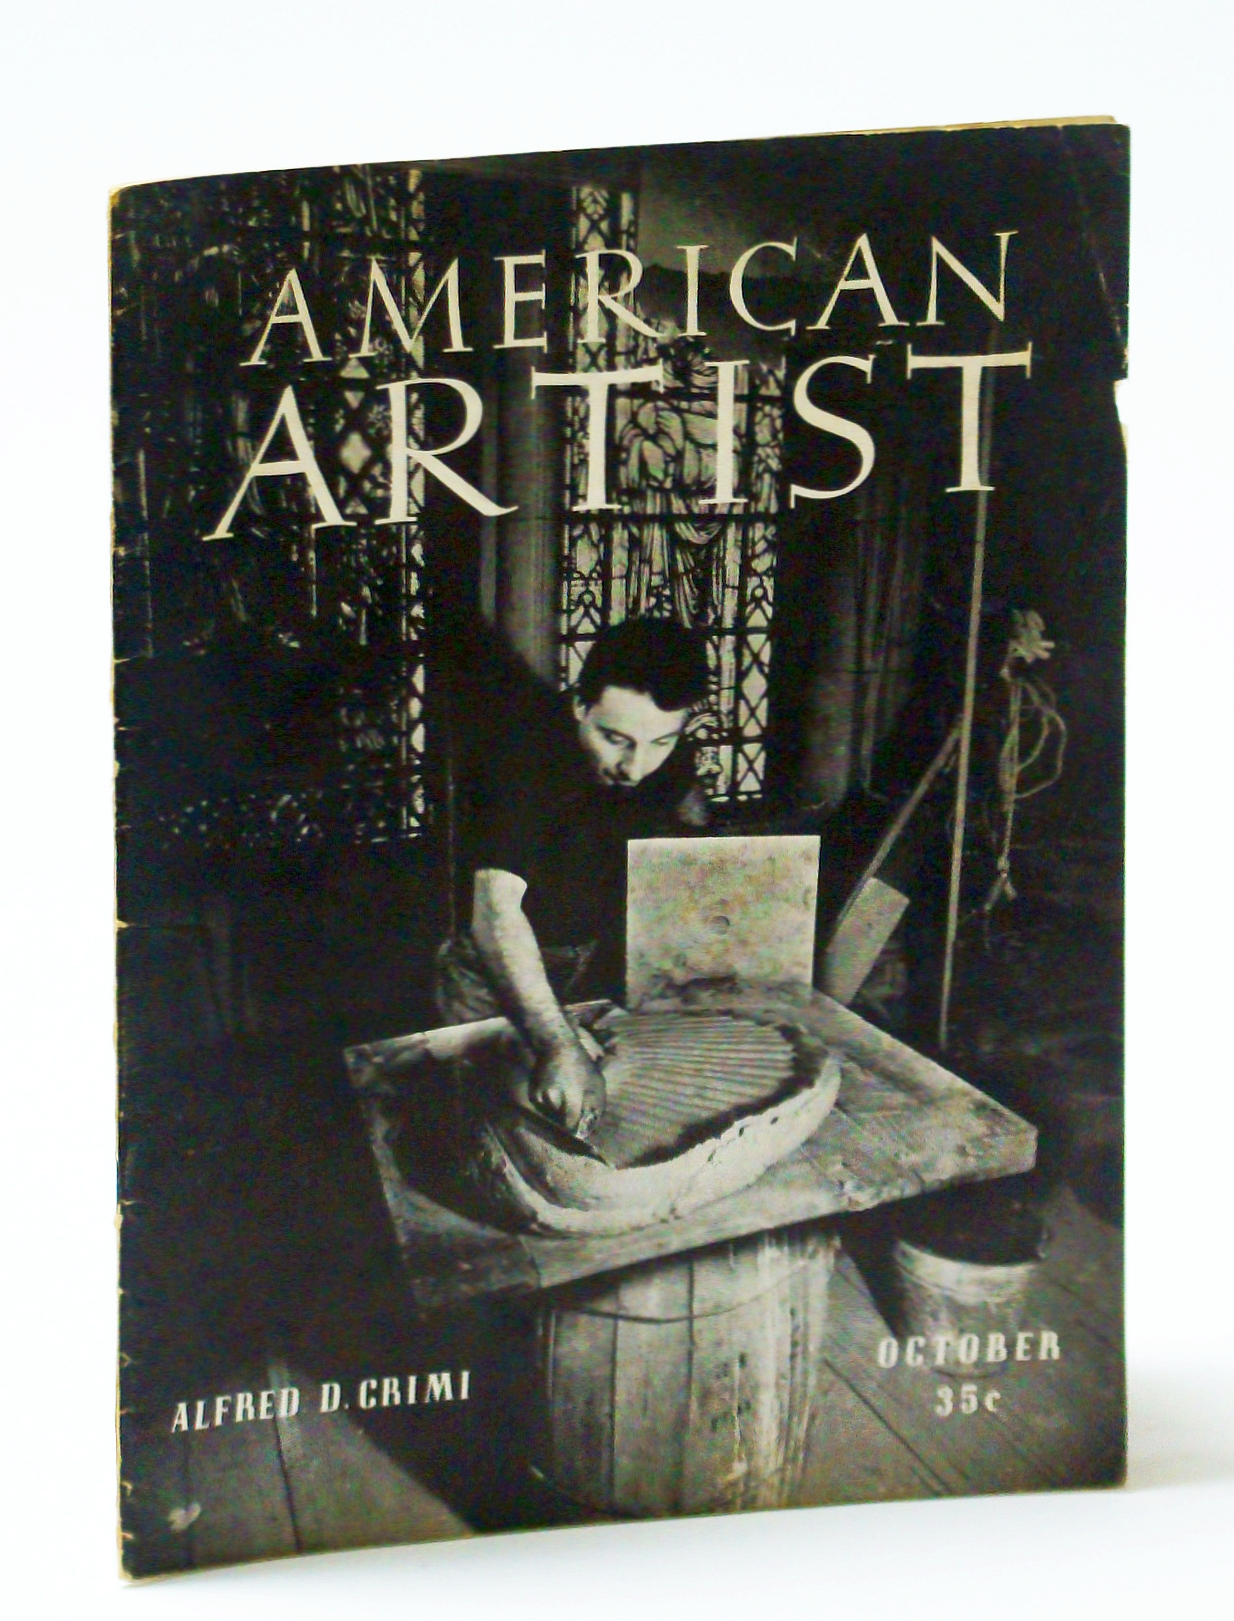 Image for American Artist Magazine, October (Oct.) 1941 - Alfred D. Crimi Cover Photo